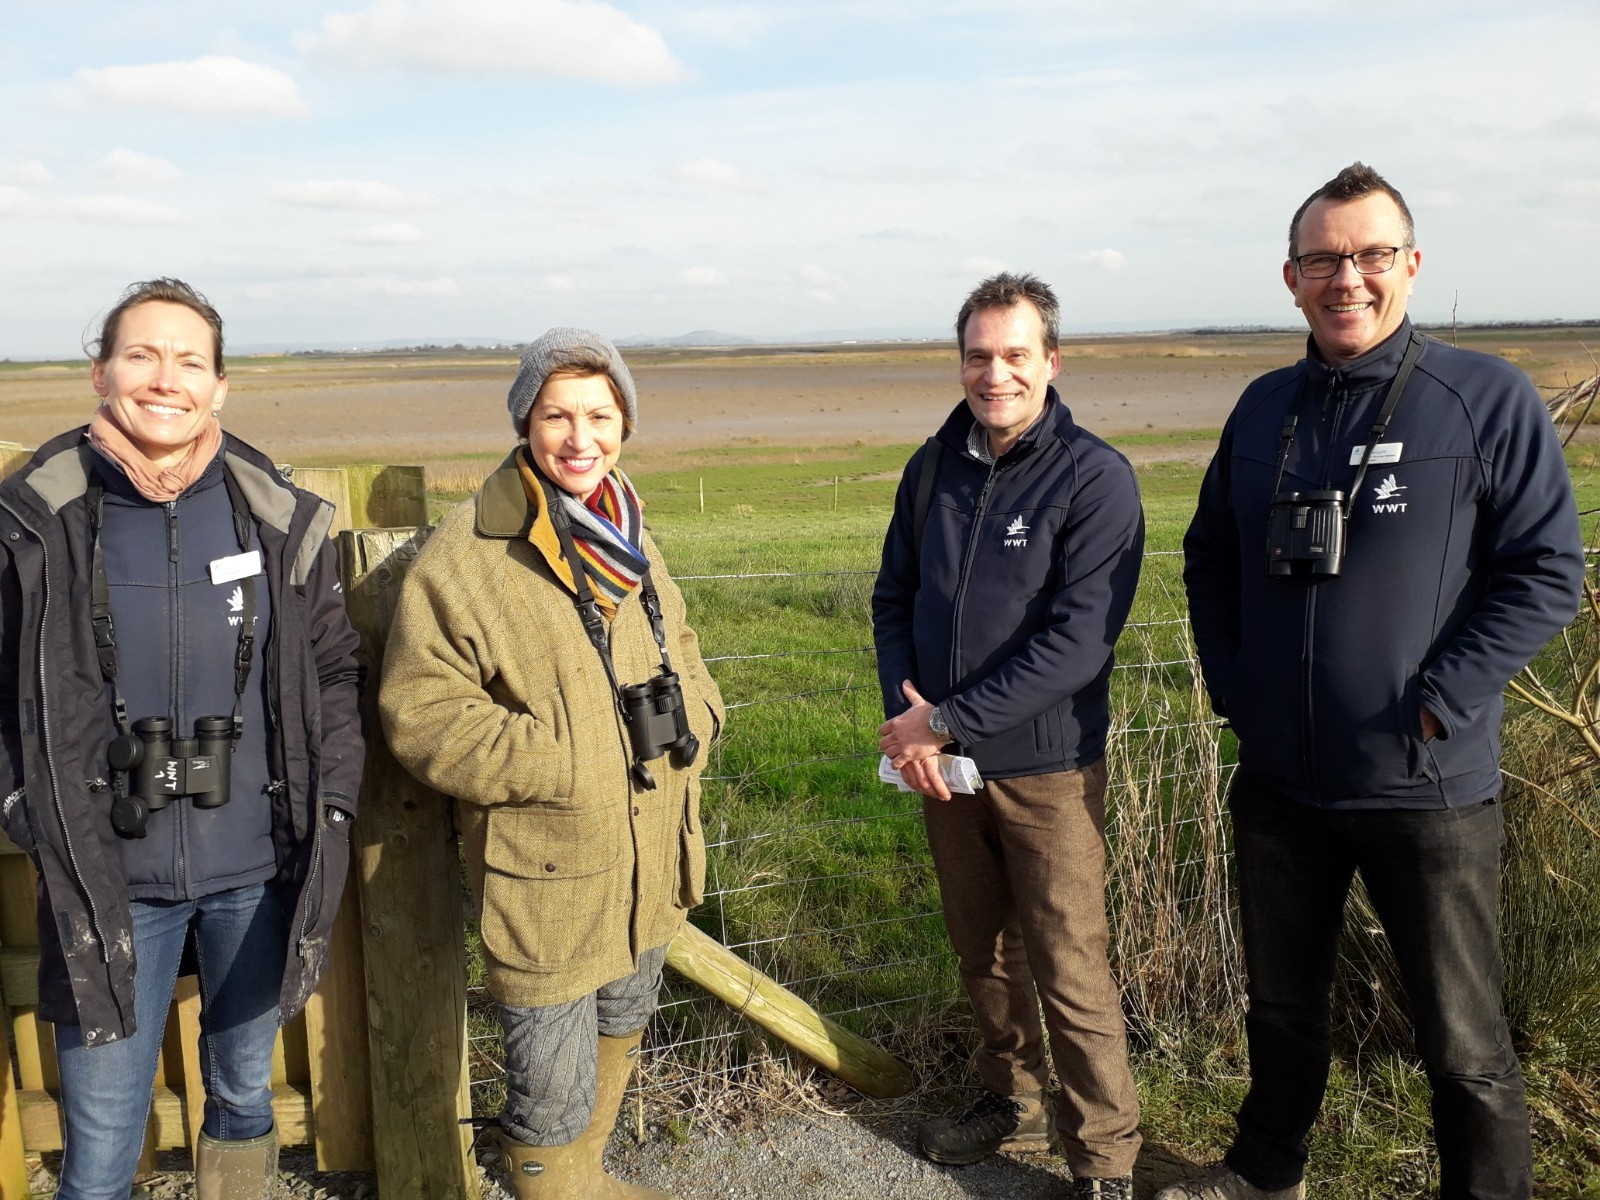 Environment Minister and Taunton Deane MP visits UK's largest wetland reserve to discover how wetlands can combat climate crisis